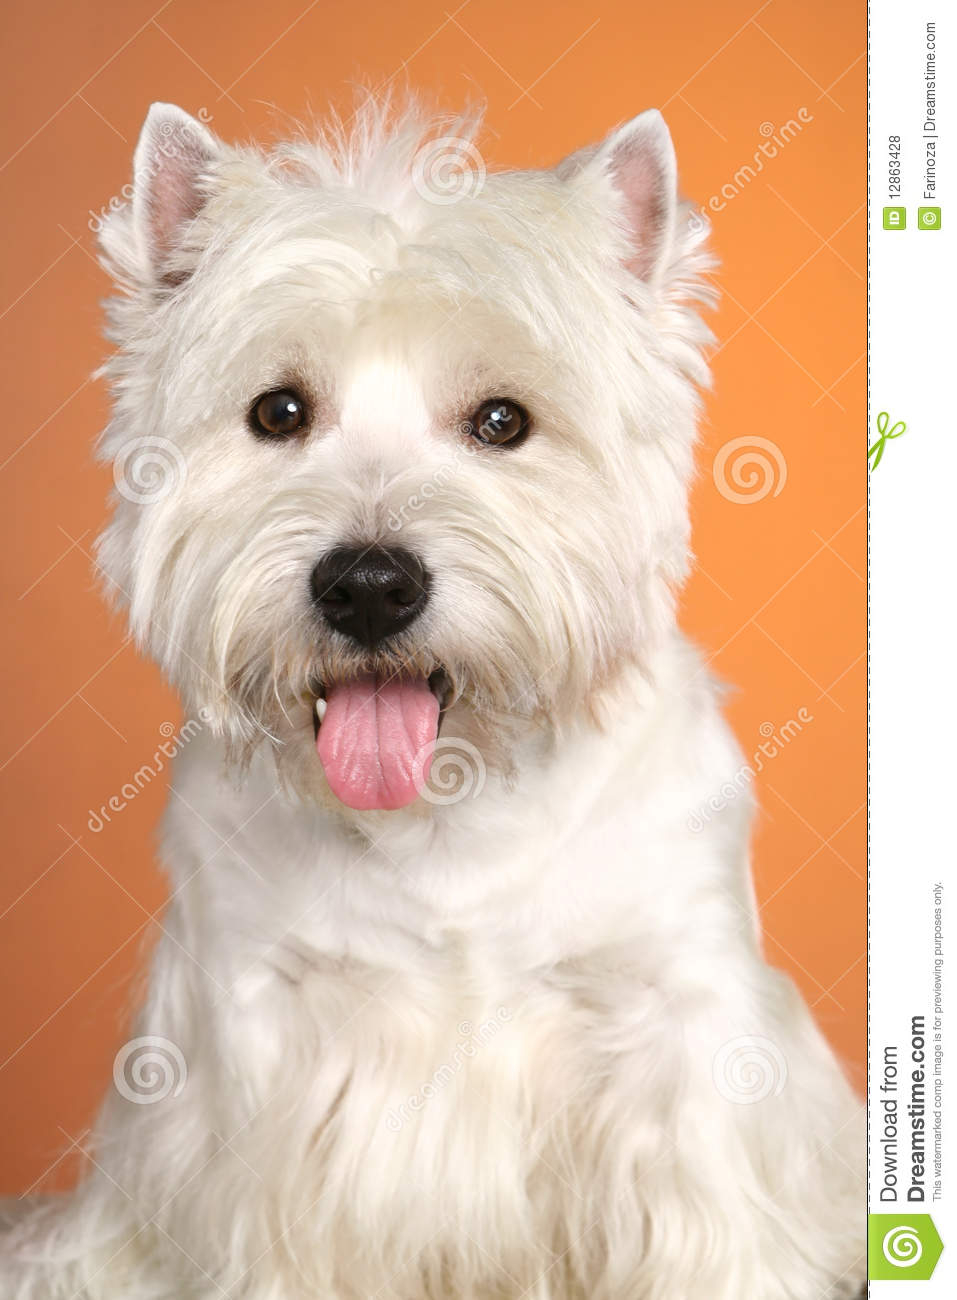 Flaffy Westy Terrier Royalty Free Stock Photos - Image: 12863428